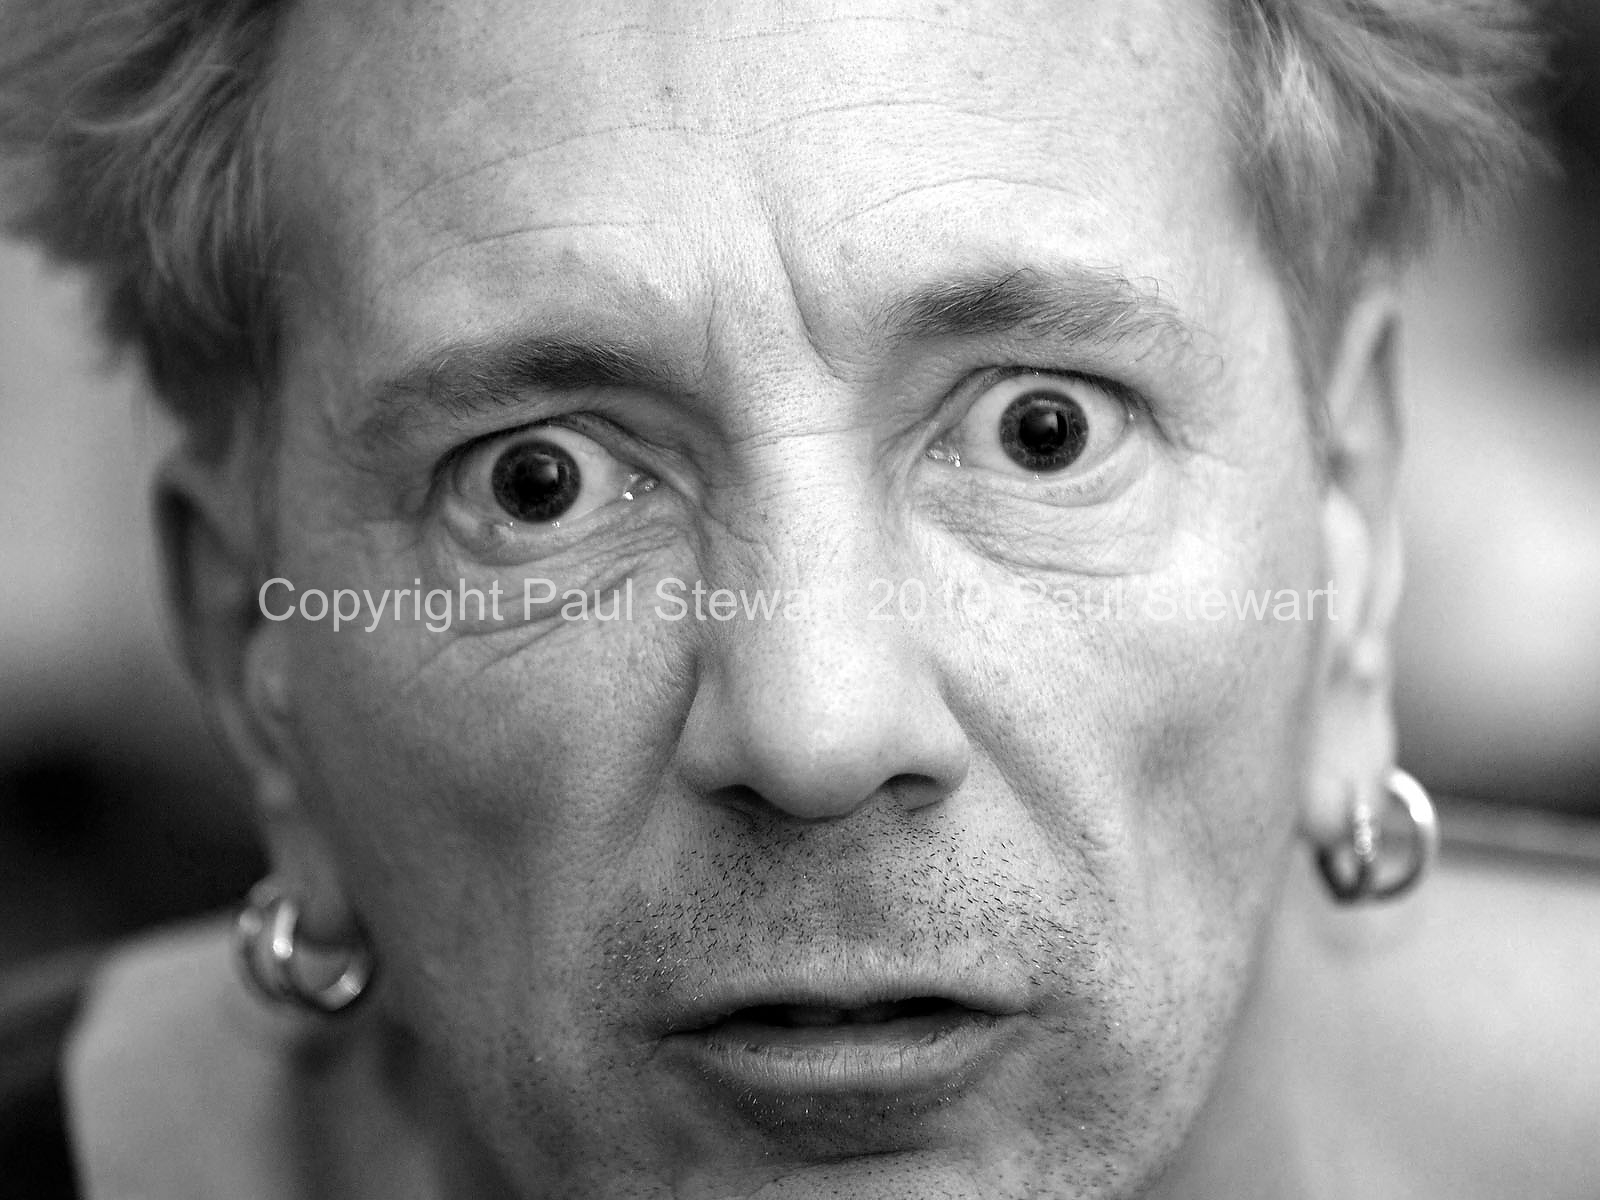 16/12/2005 OPS: John Lydon Press Images for It's Amazing Who You Meet Volume 1 by Paul Stewart These may only be used in conjunction with reviews of the book or exhibition without further permission ©Paul Stewart 2010 07917652636